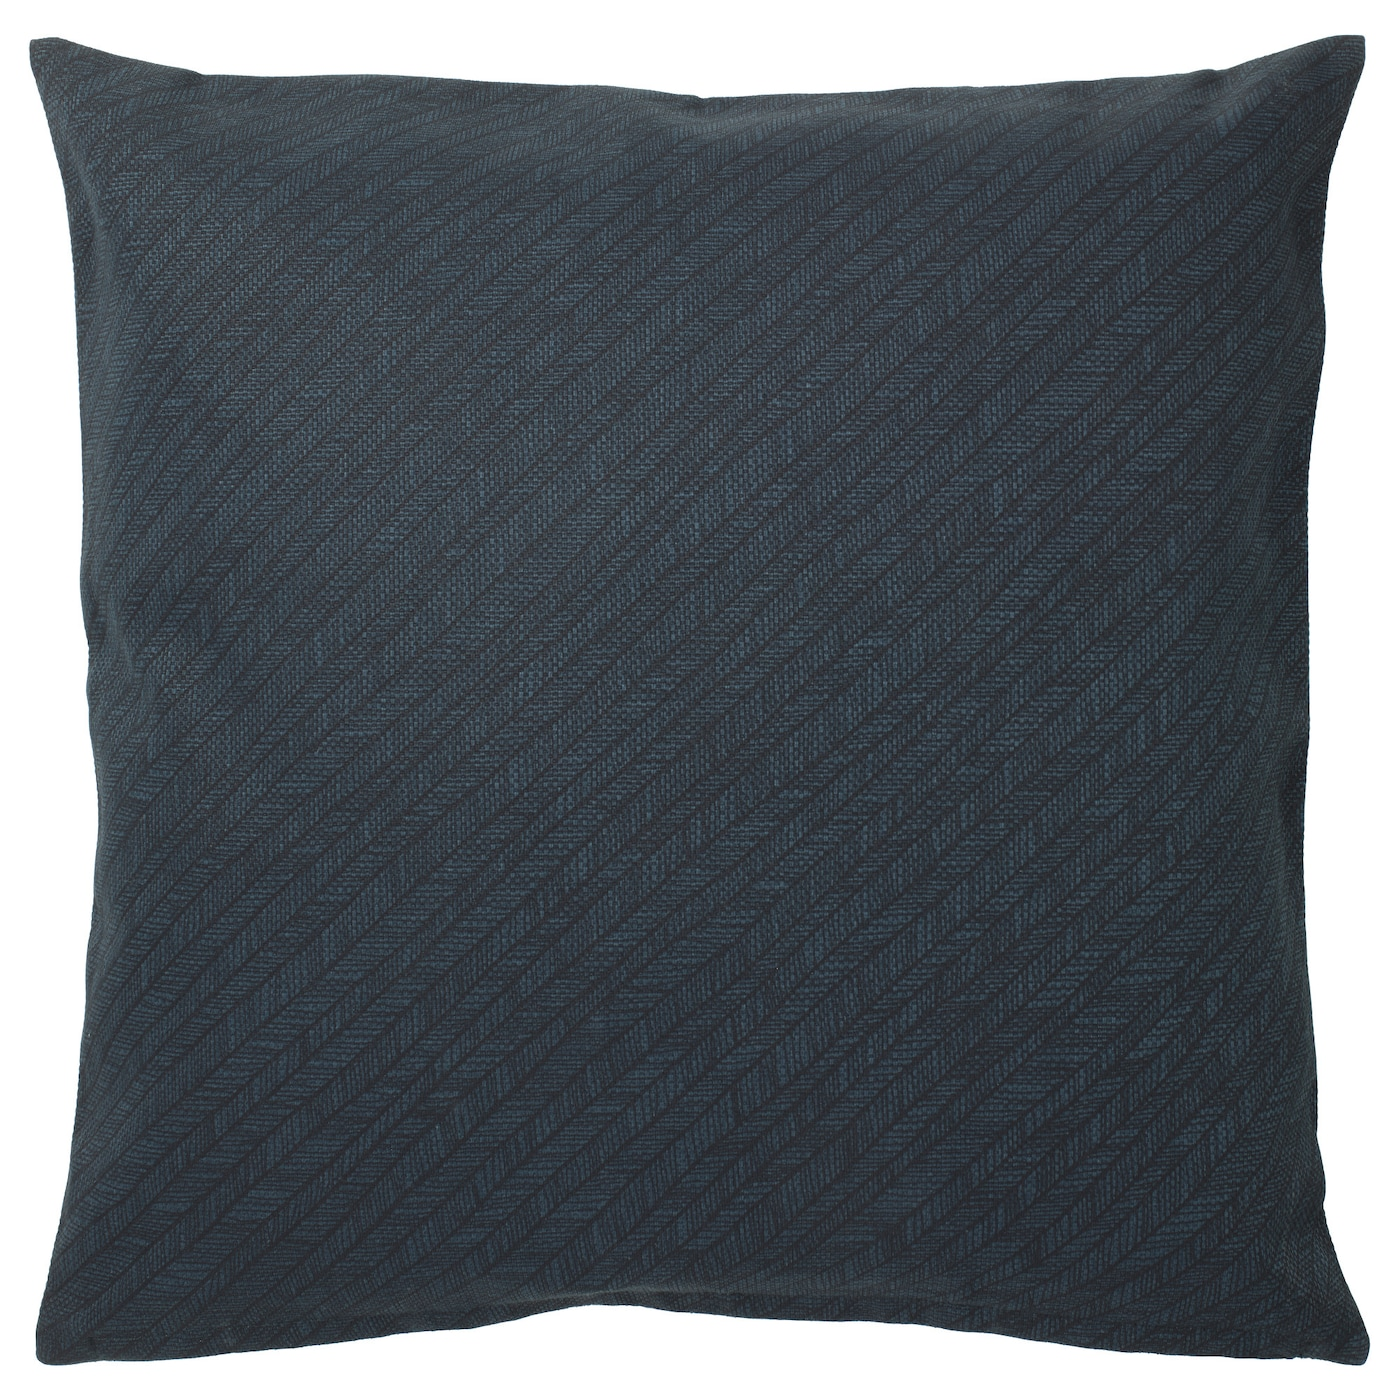 ypperlig housse de coussin bleu fonc ray 50 x 50 cm ikea. Black Bedroom Furniture Sets. Home Design Ideas